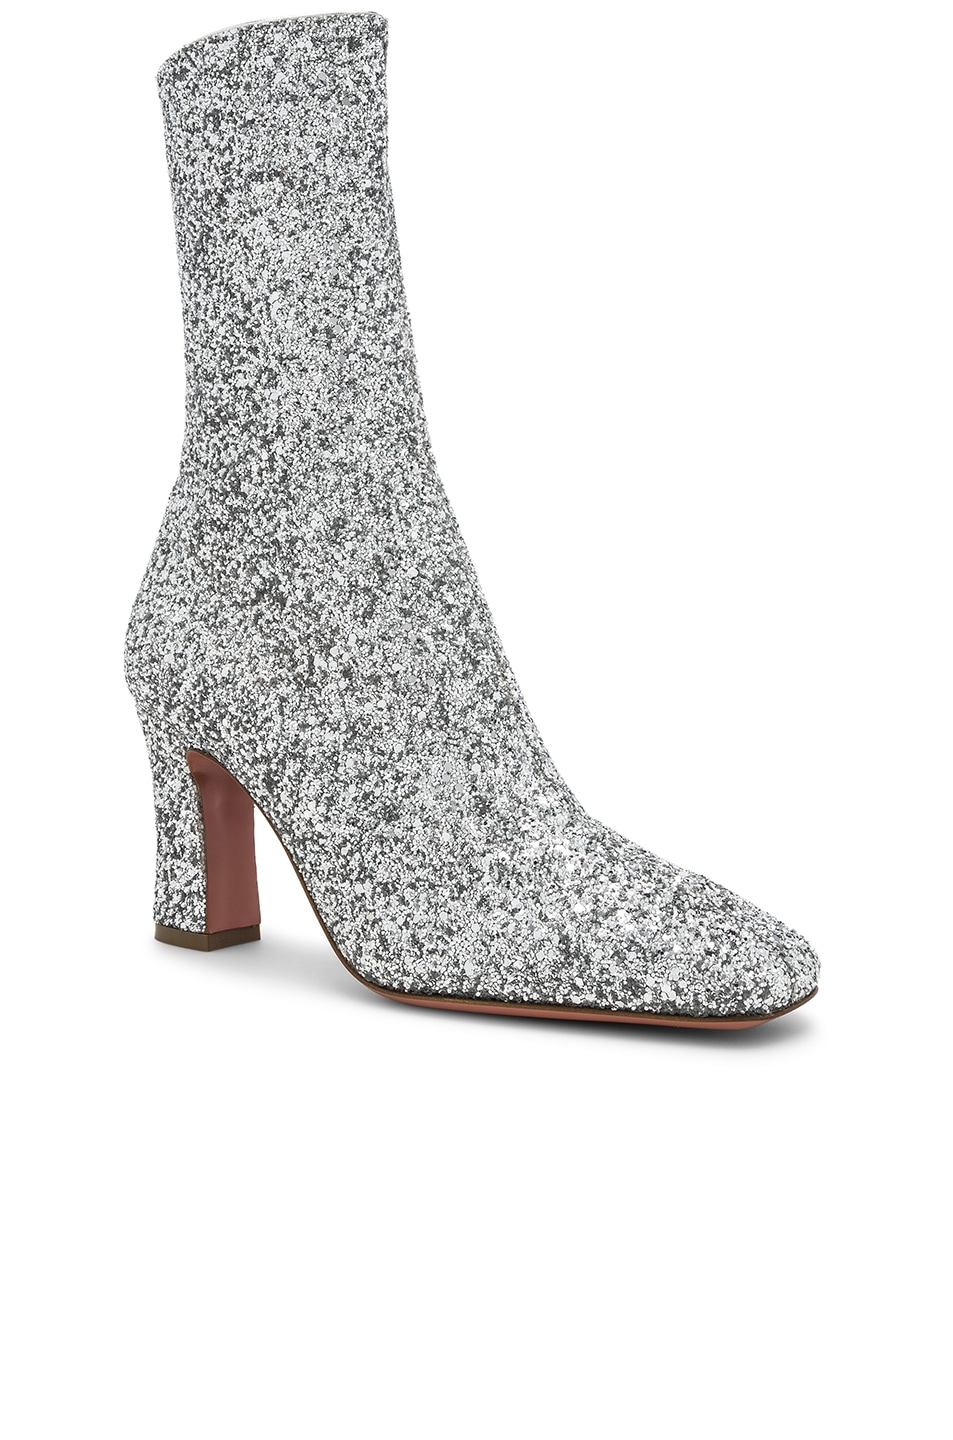 Image 2 of AMINA MUADDI Glitter Stretch Sabrina Ankle Boots in Silver